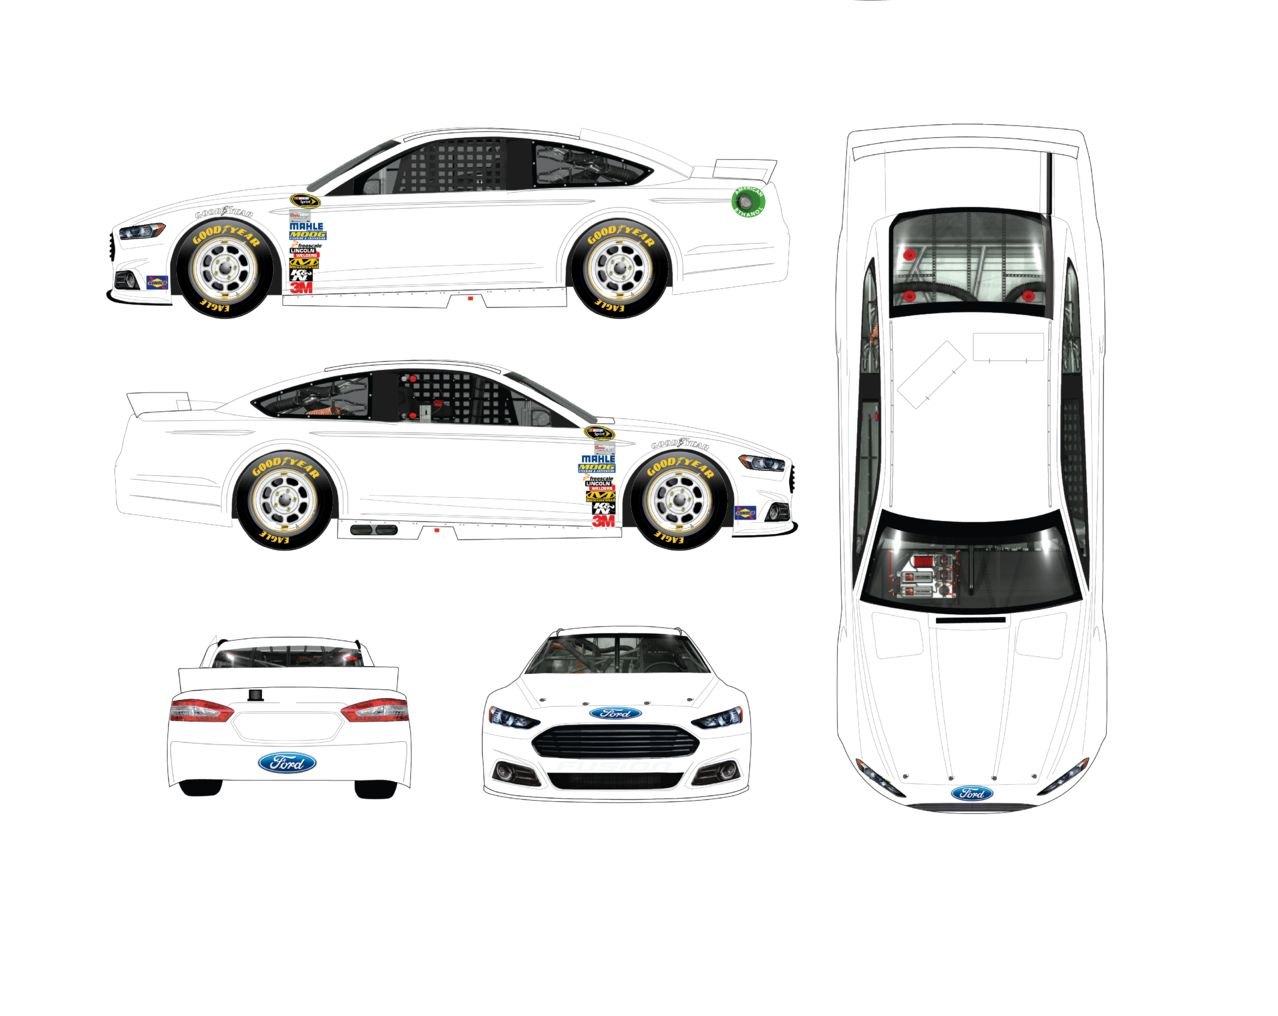 2016 Ford Fusion Template Car_64